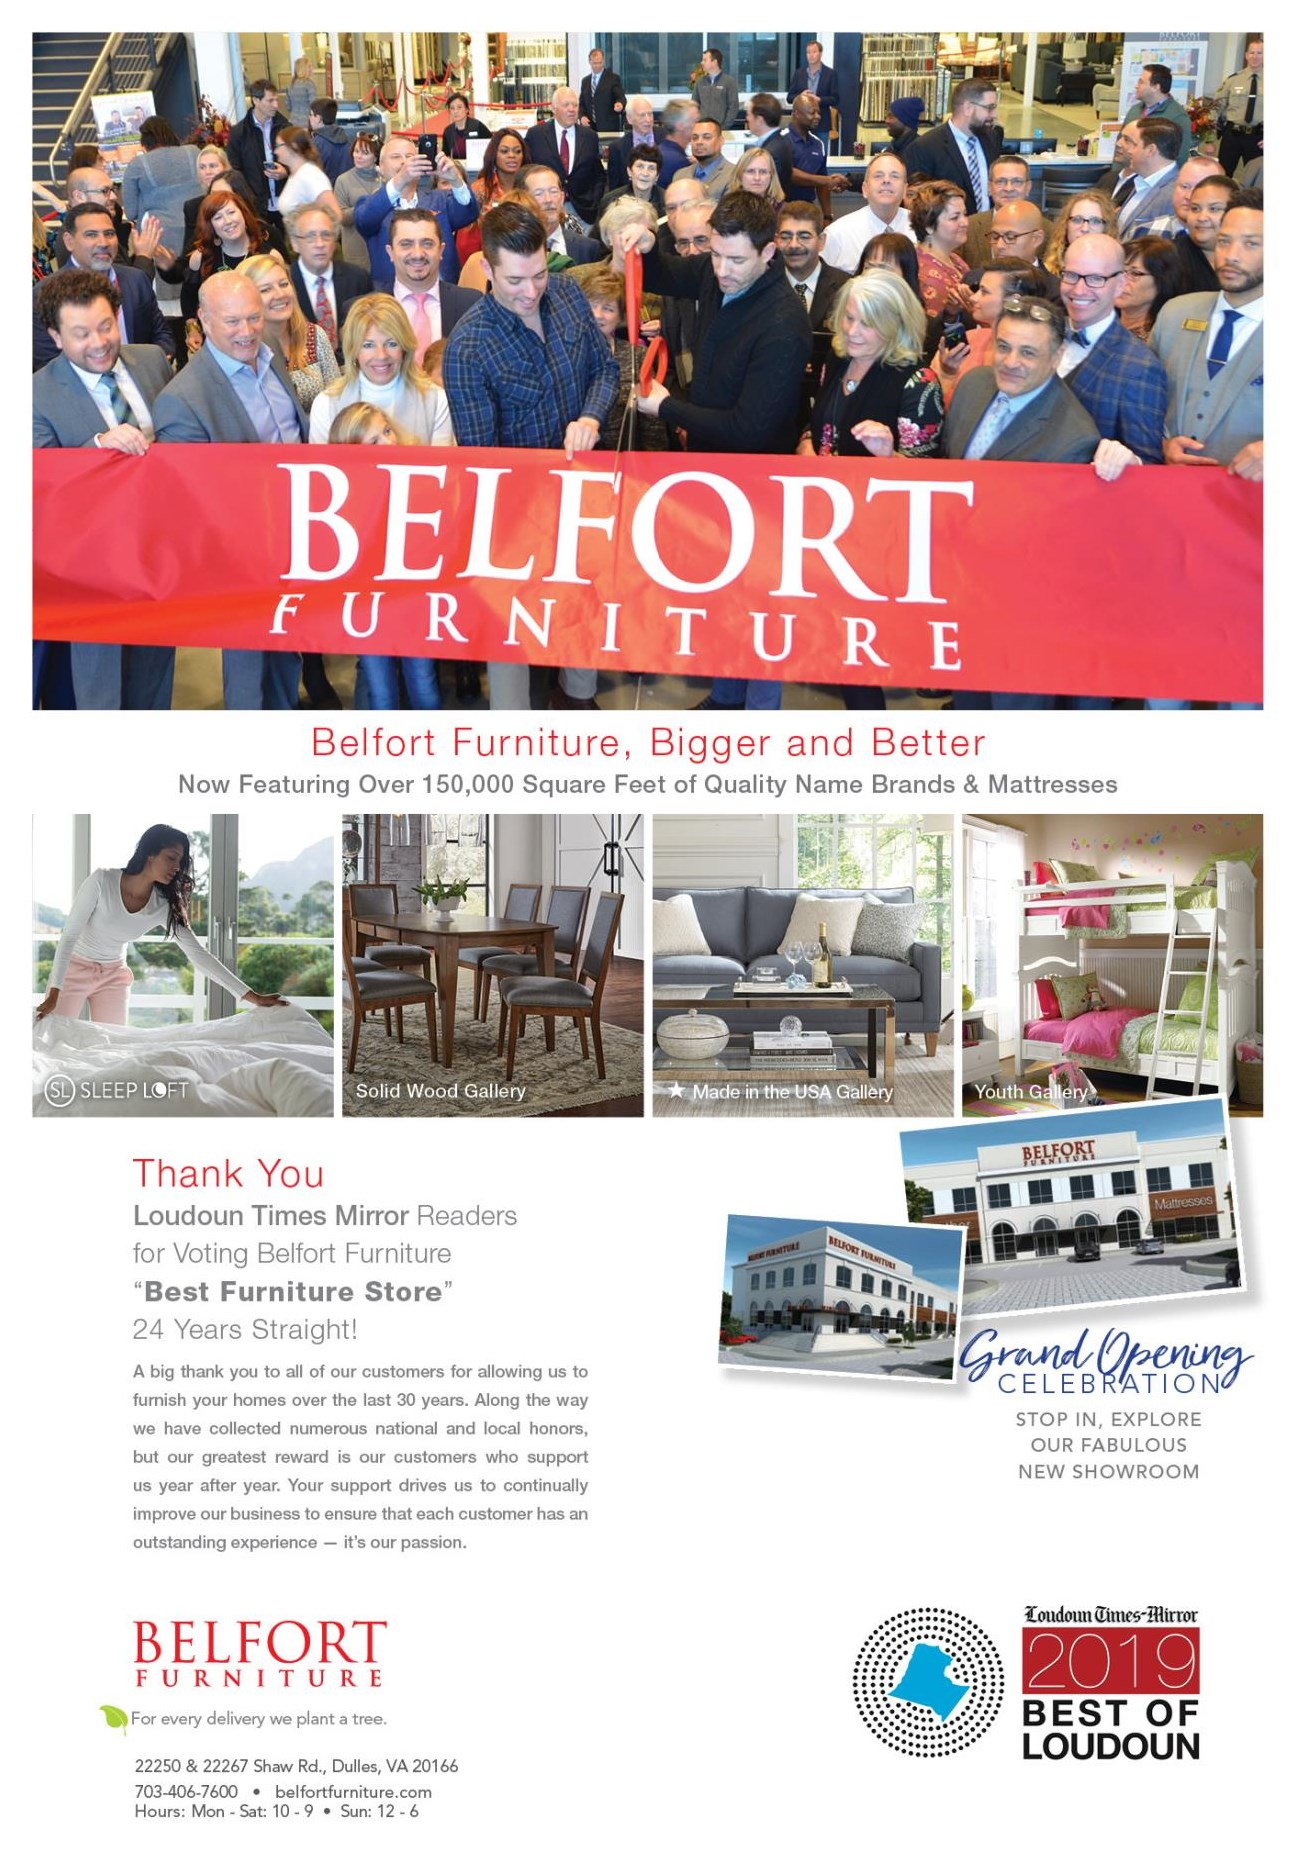 Loudoun Times Mirror readers voted Belfort,